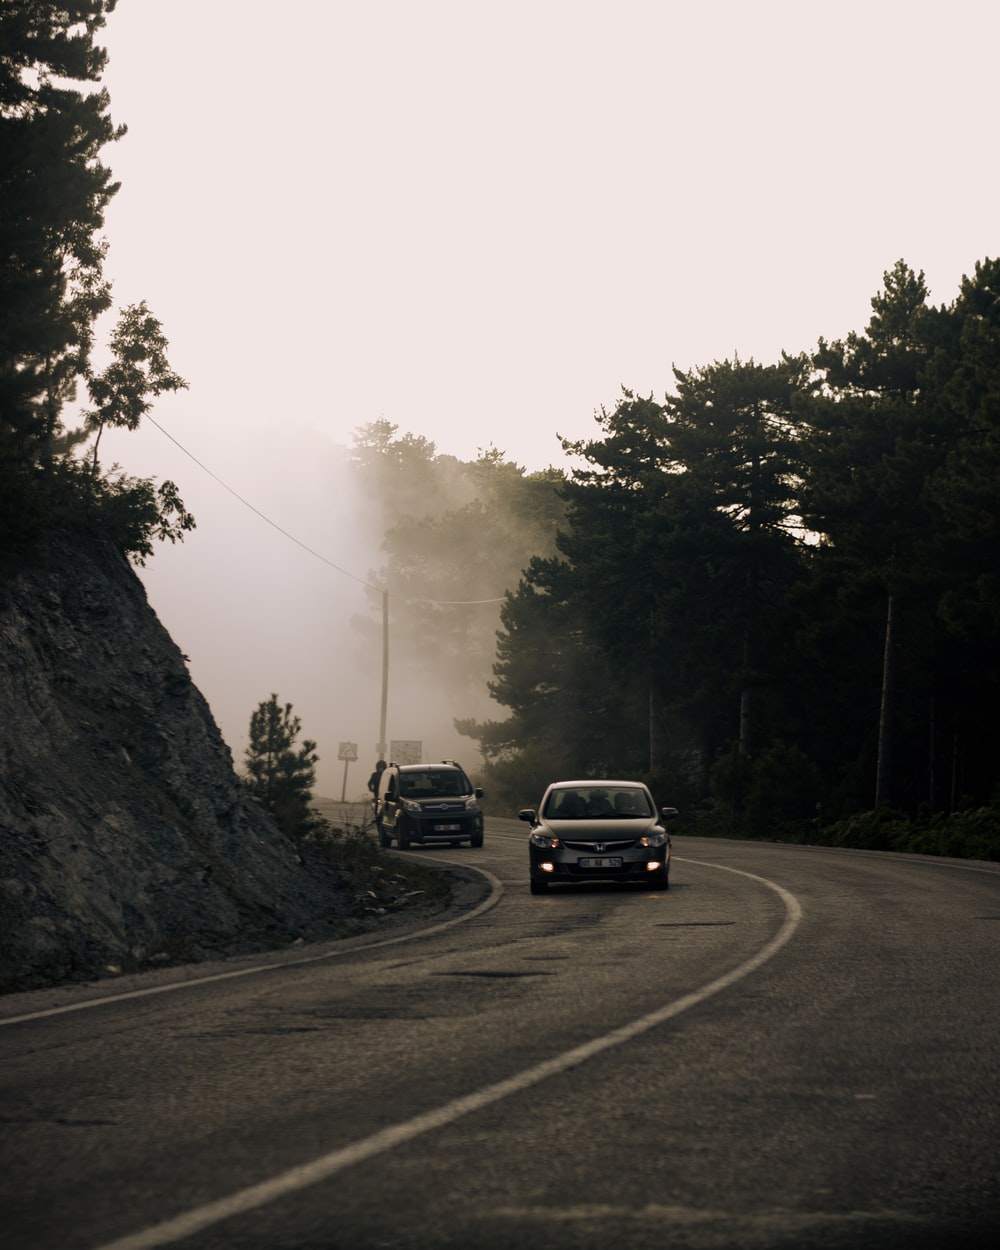 black suv on road near trees during daytime